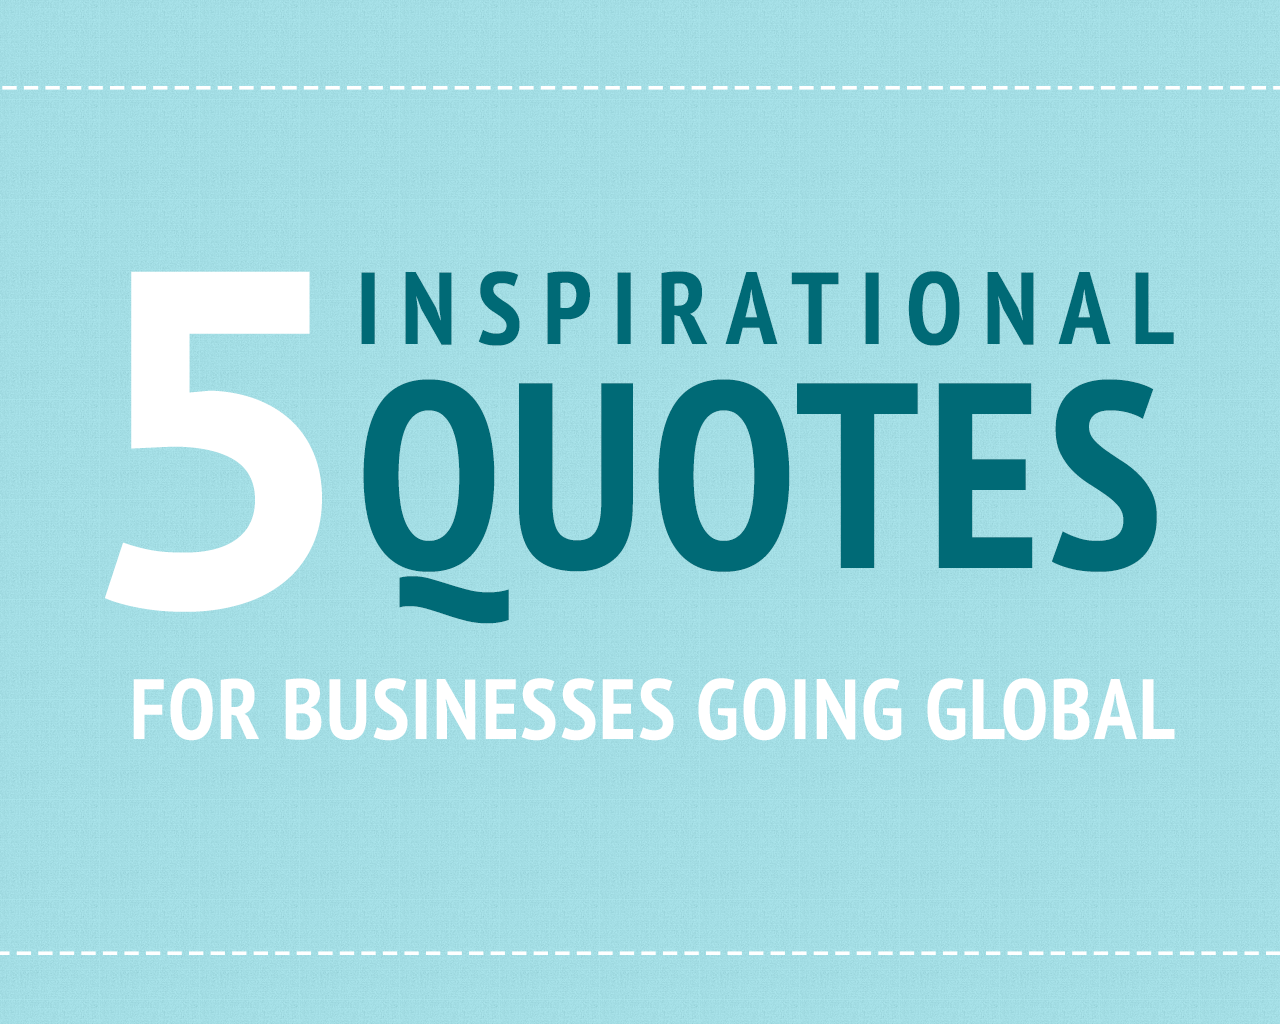 5 Inspirational Quotes For Businesses Going Global